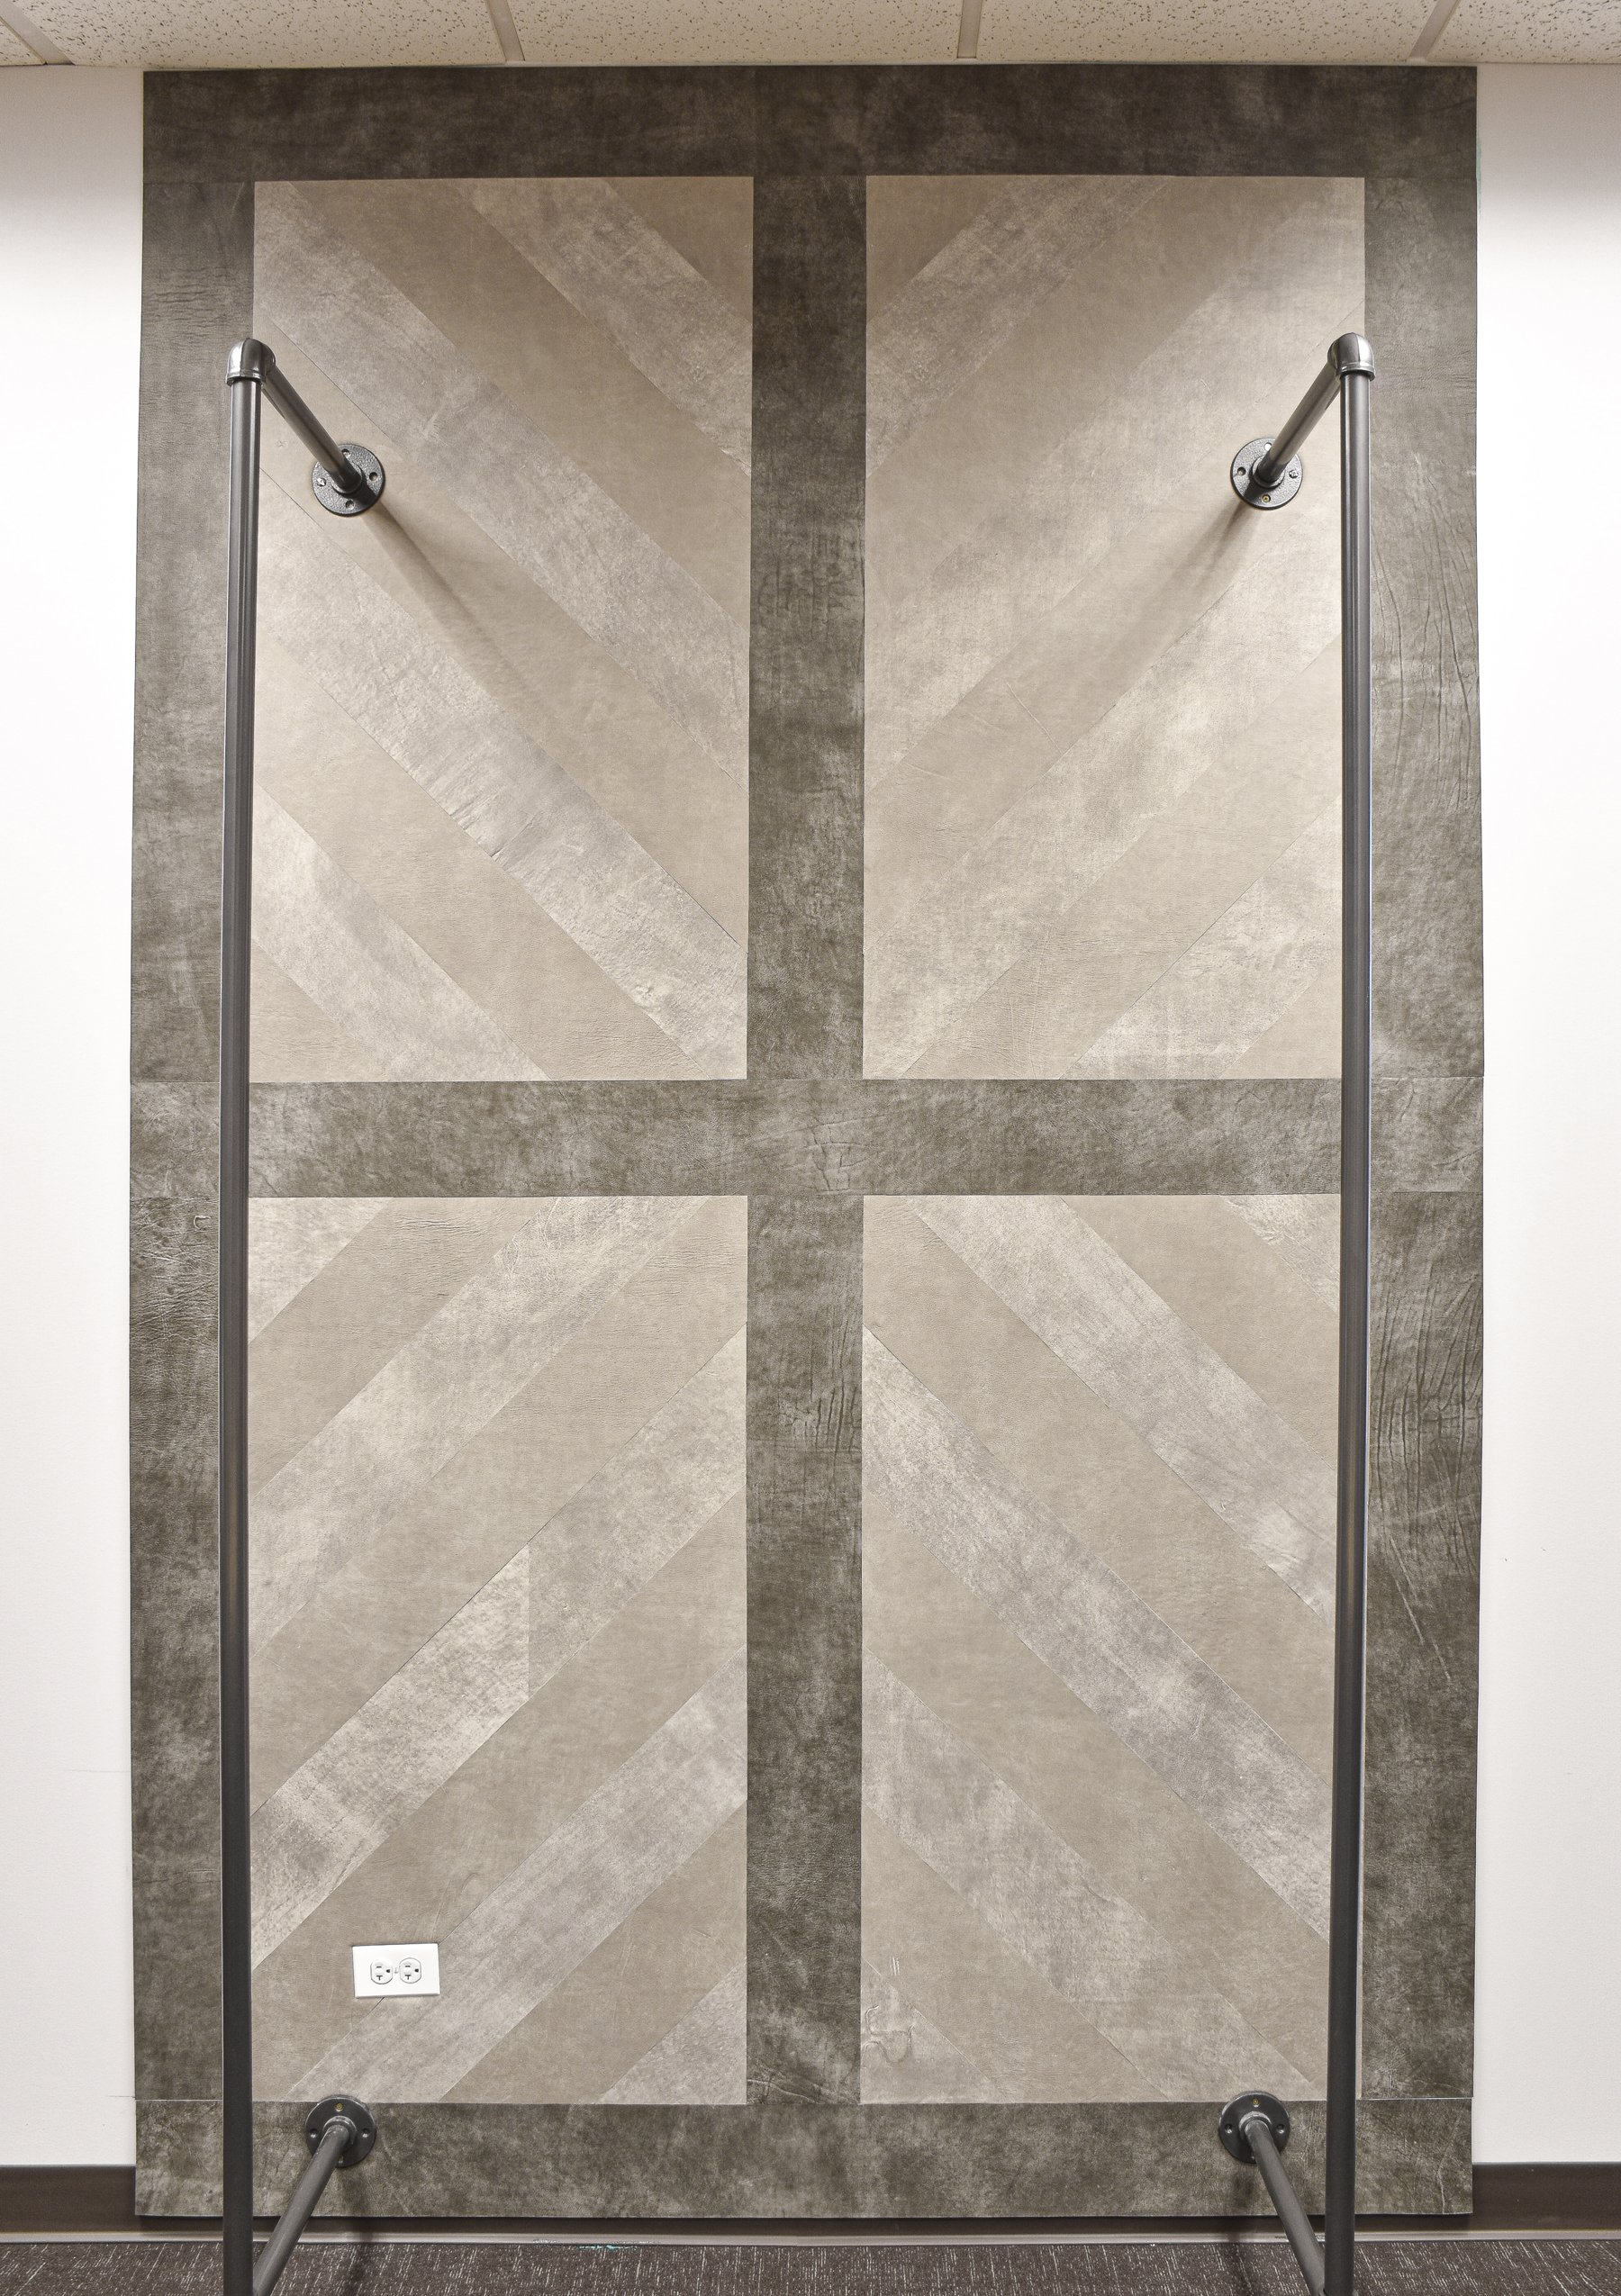 Image of Keleen Leathers KLAD Luxury Leather Wall for Retail Design